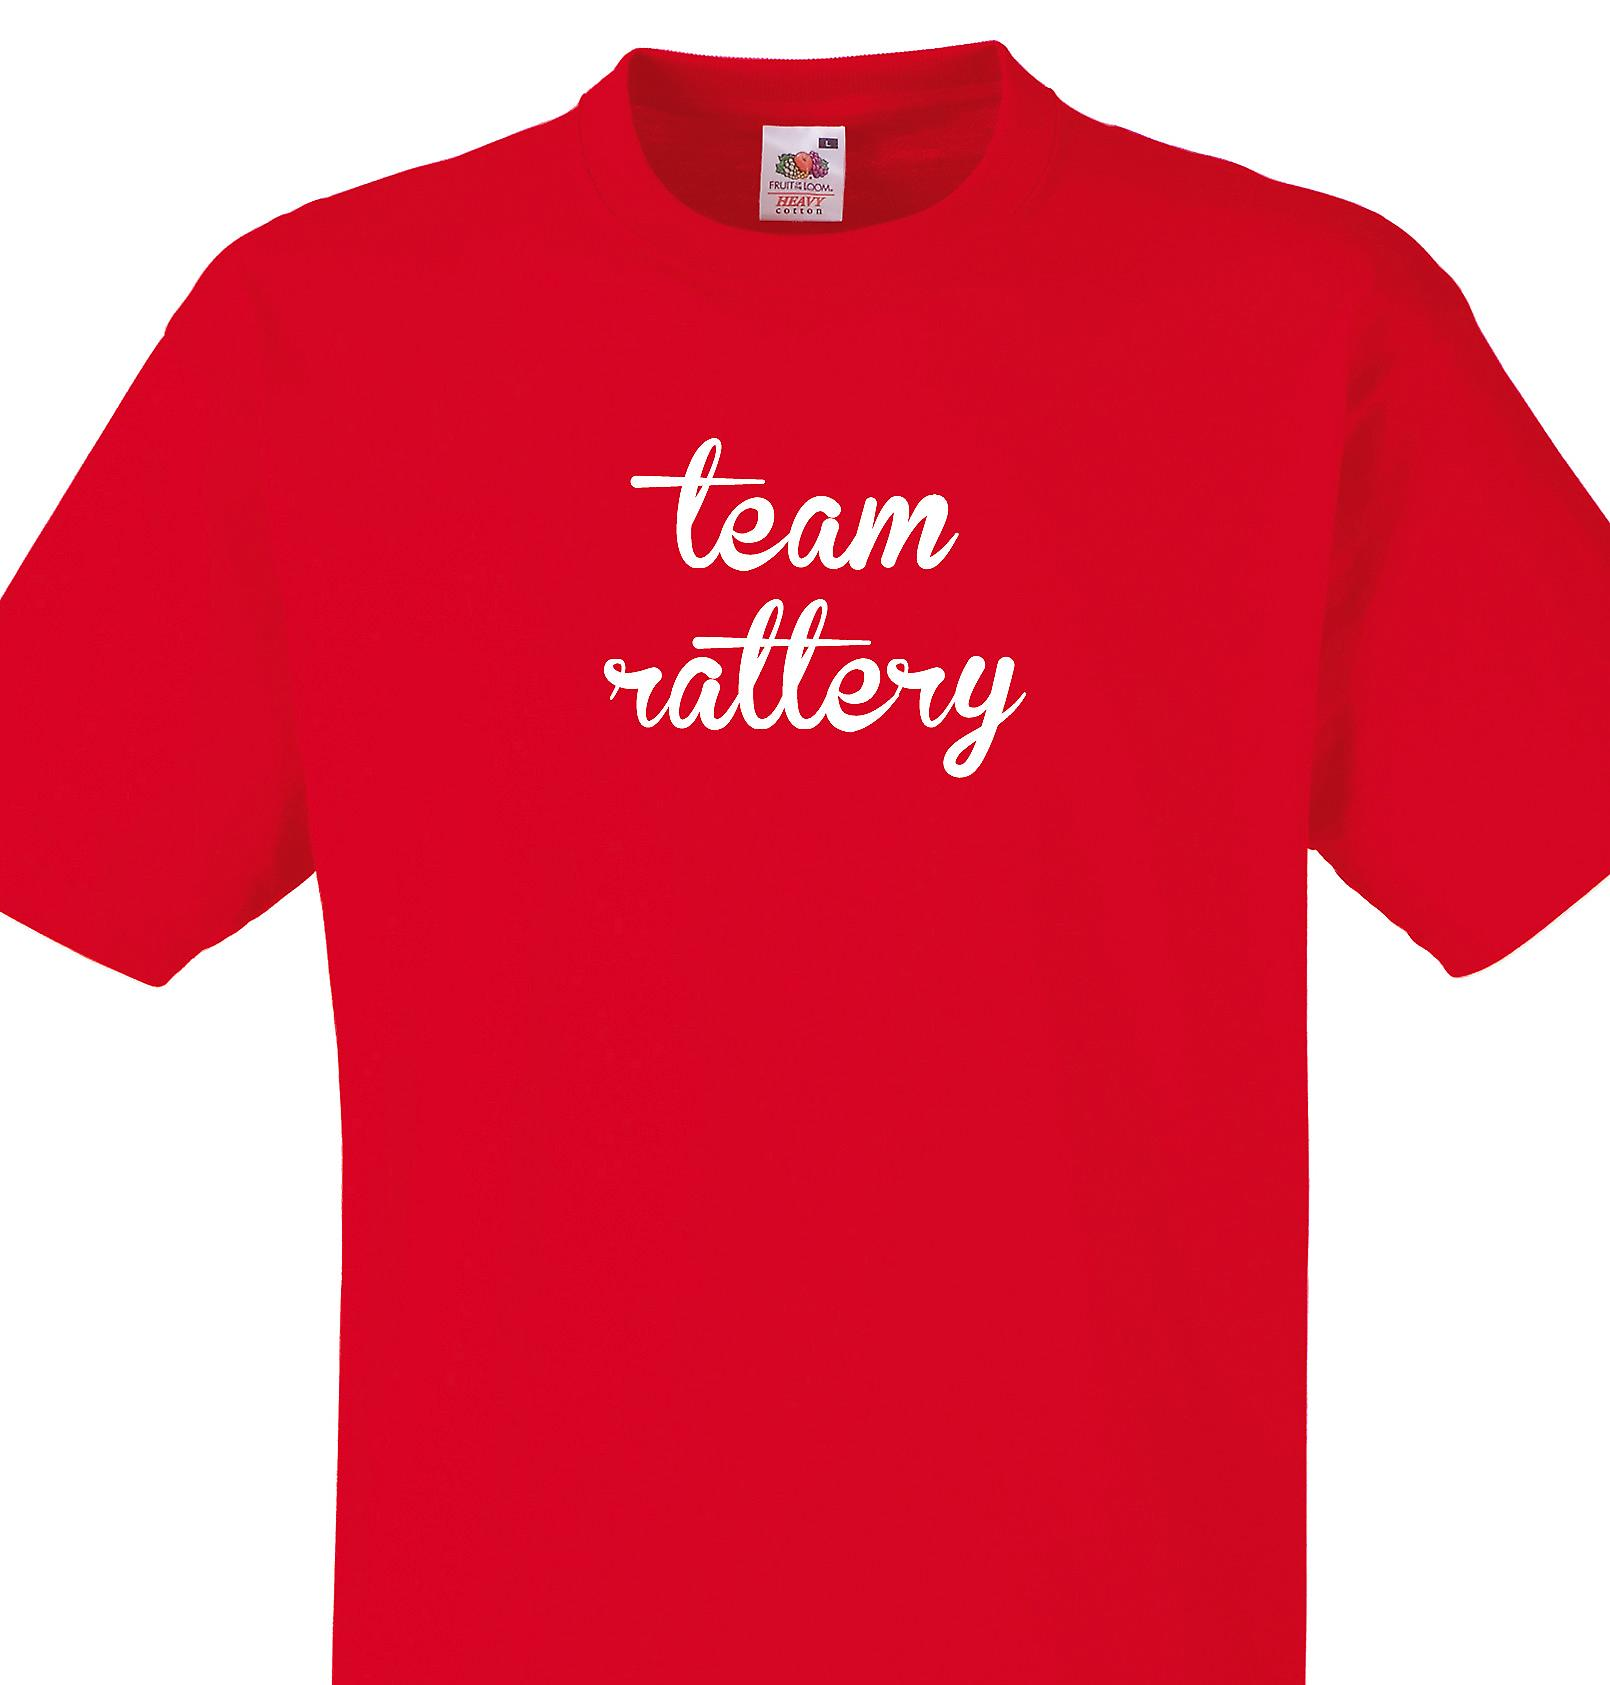 Team Rattery Red T shirt